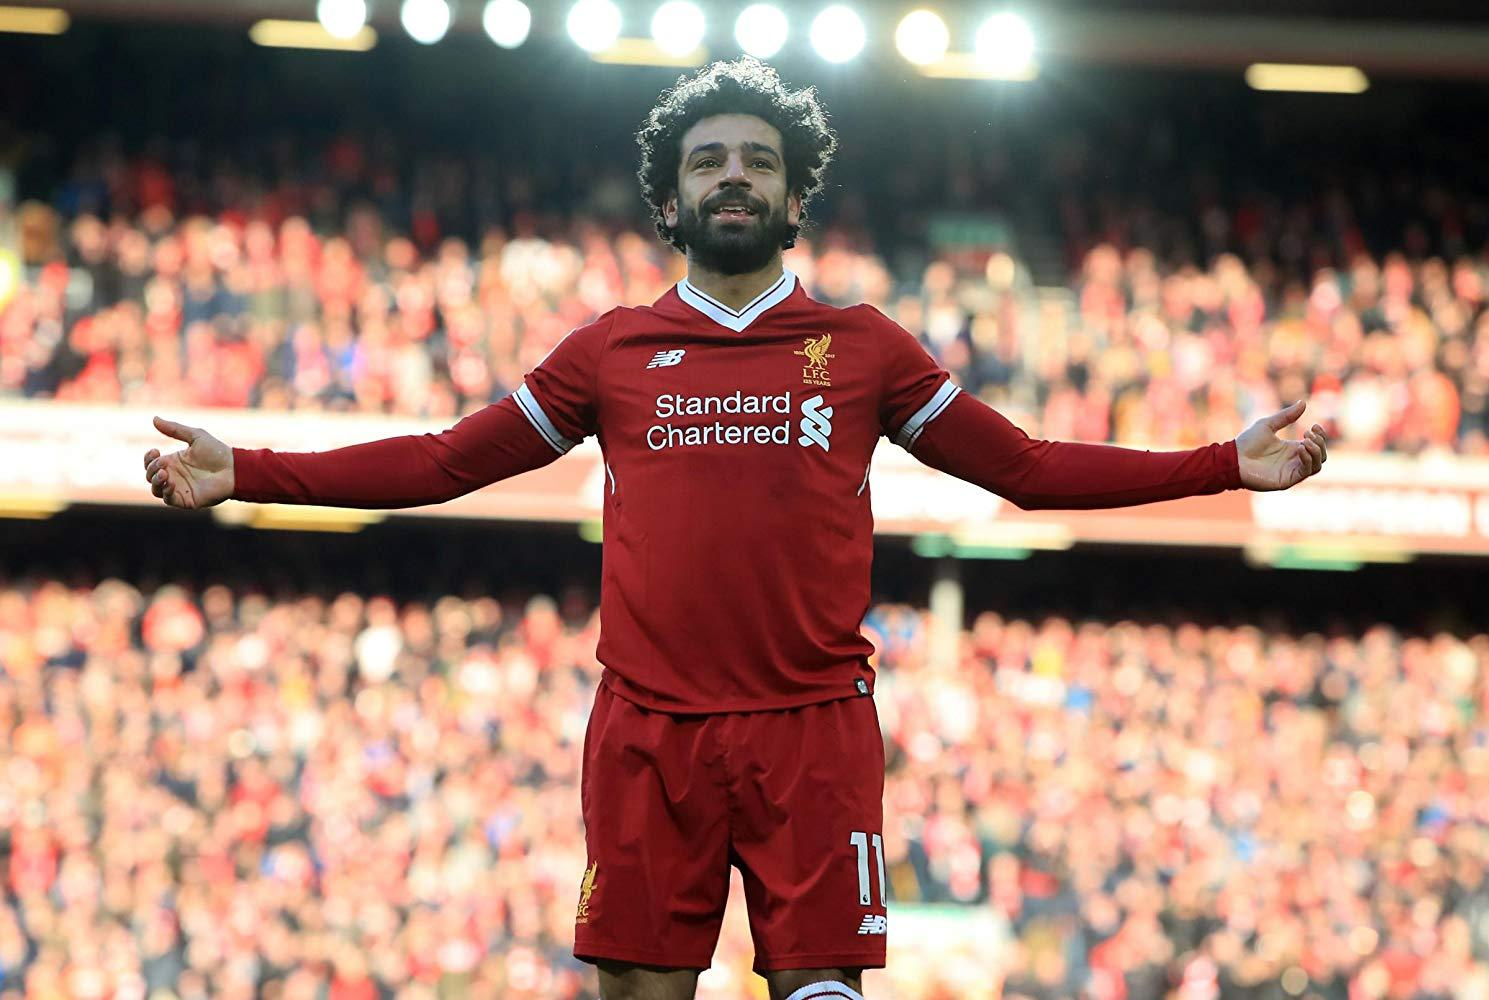 مشاهدة فيلم Mo Salah: A Football Fairy Tale (2018) مترجم HD